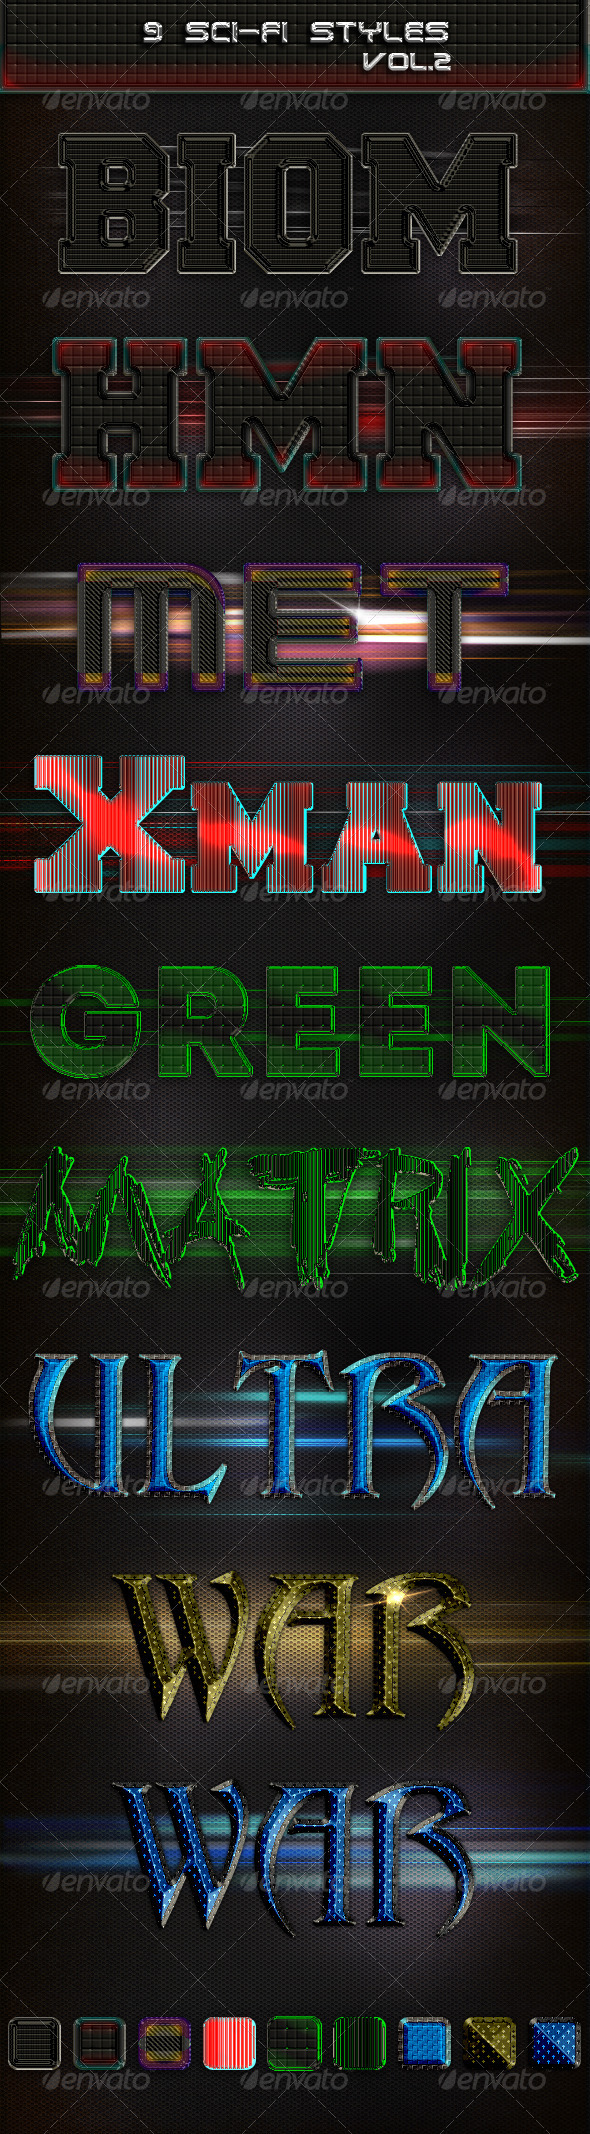 9 Sci-Fi Styles vol. 2 - Text Effects Styles